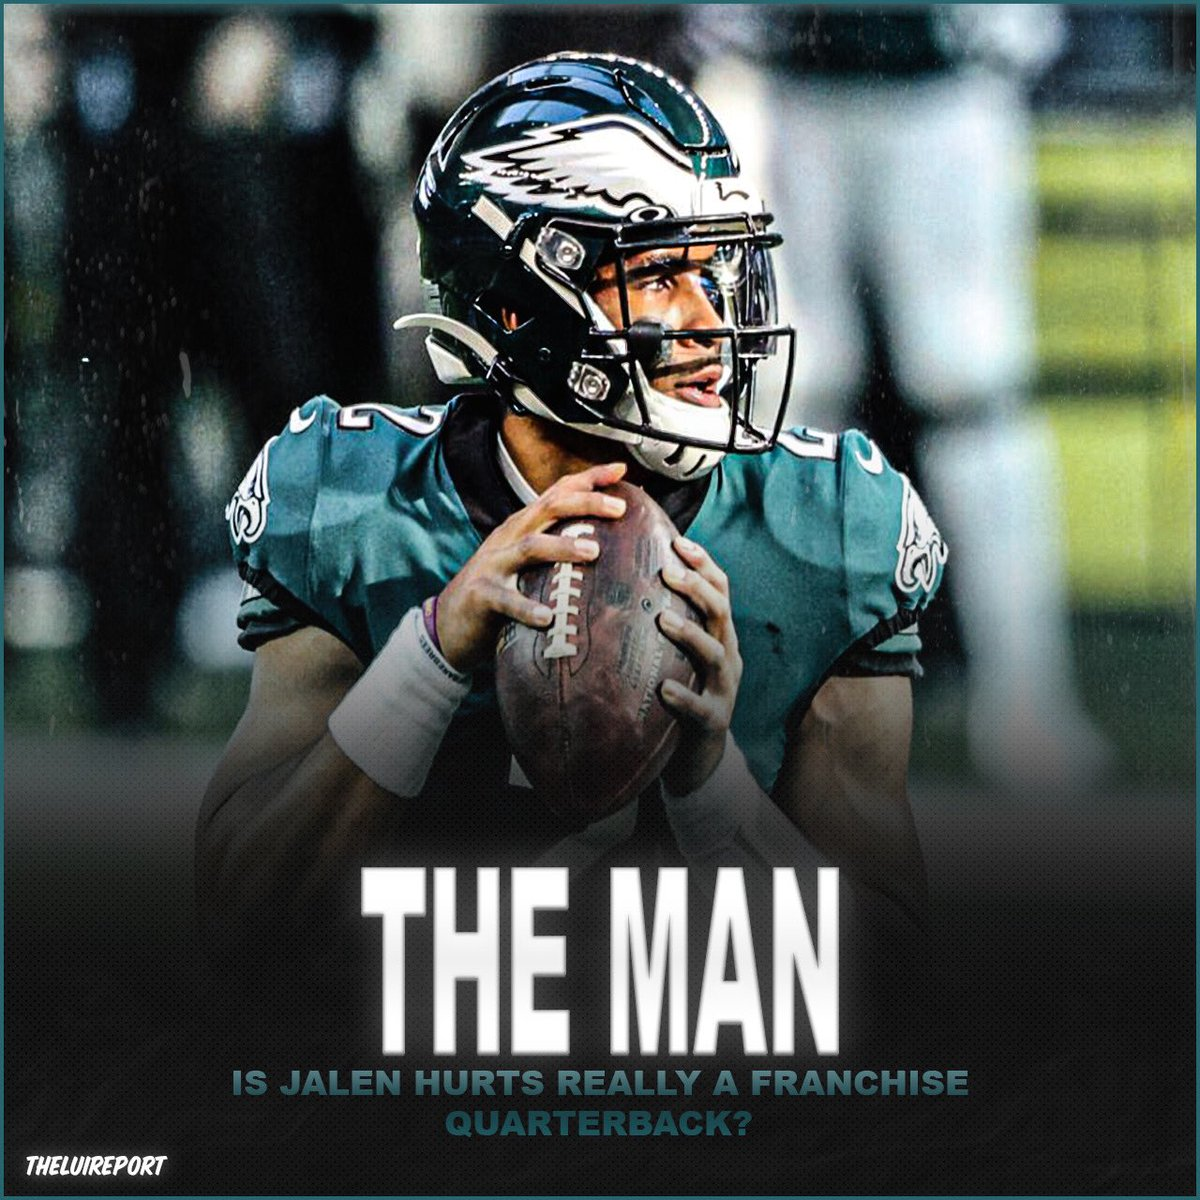 DAILYQ: I think he can turn into a franchise QB but he's gonna have to work really hard and fix his passing game. What do y'all think?   Let me know below! ⬇️  Follow @theluireport and don't forget to like, comment, and share!    #nfl #nflplayoffs #jalenhurts #philadelphiaeagles